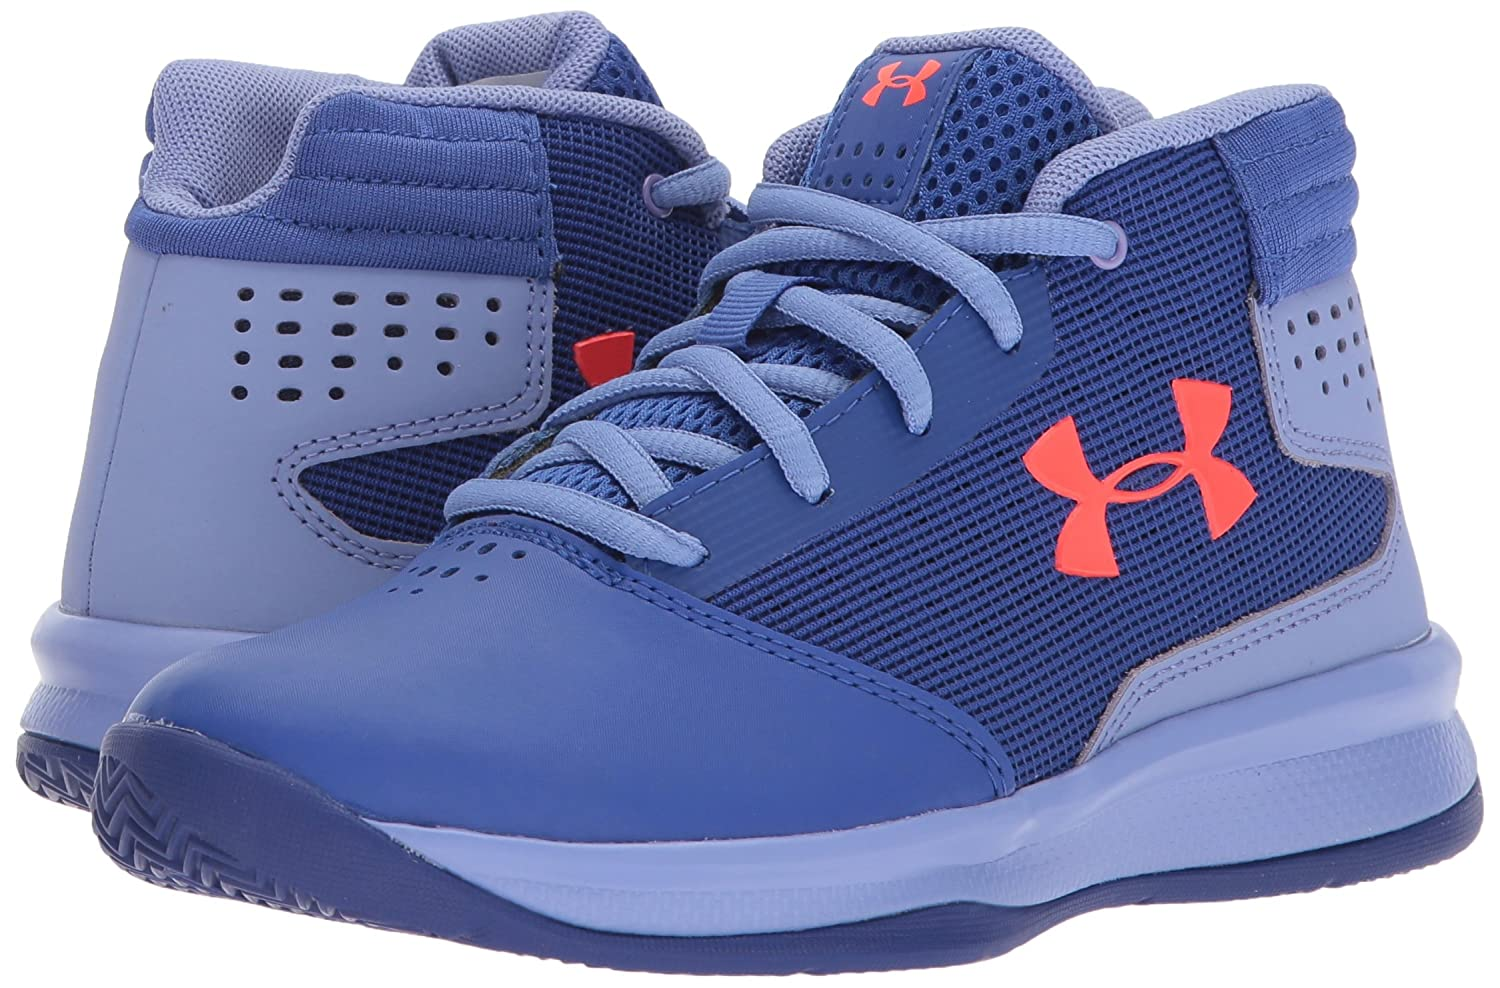 Men's/Women's Boys' Under Armour Kids' Boys' Men's/Women's Pre School Jet 2017 Running Shoe Guarantee quality and quantity Let our products go to the world Popular tide shoes RV25031 8d5c68